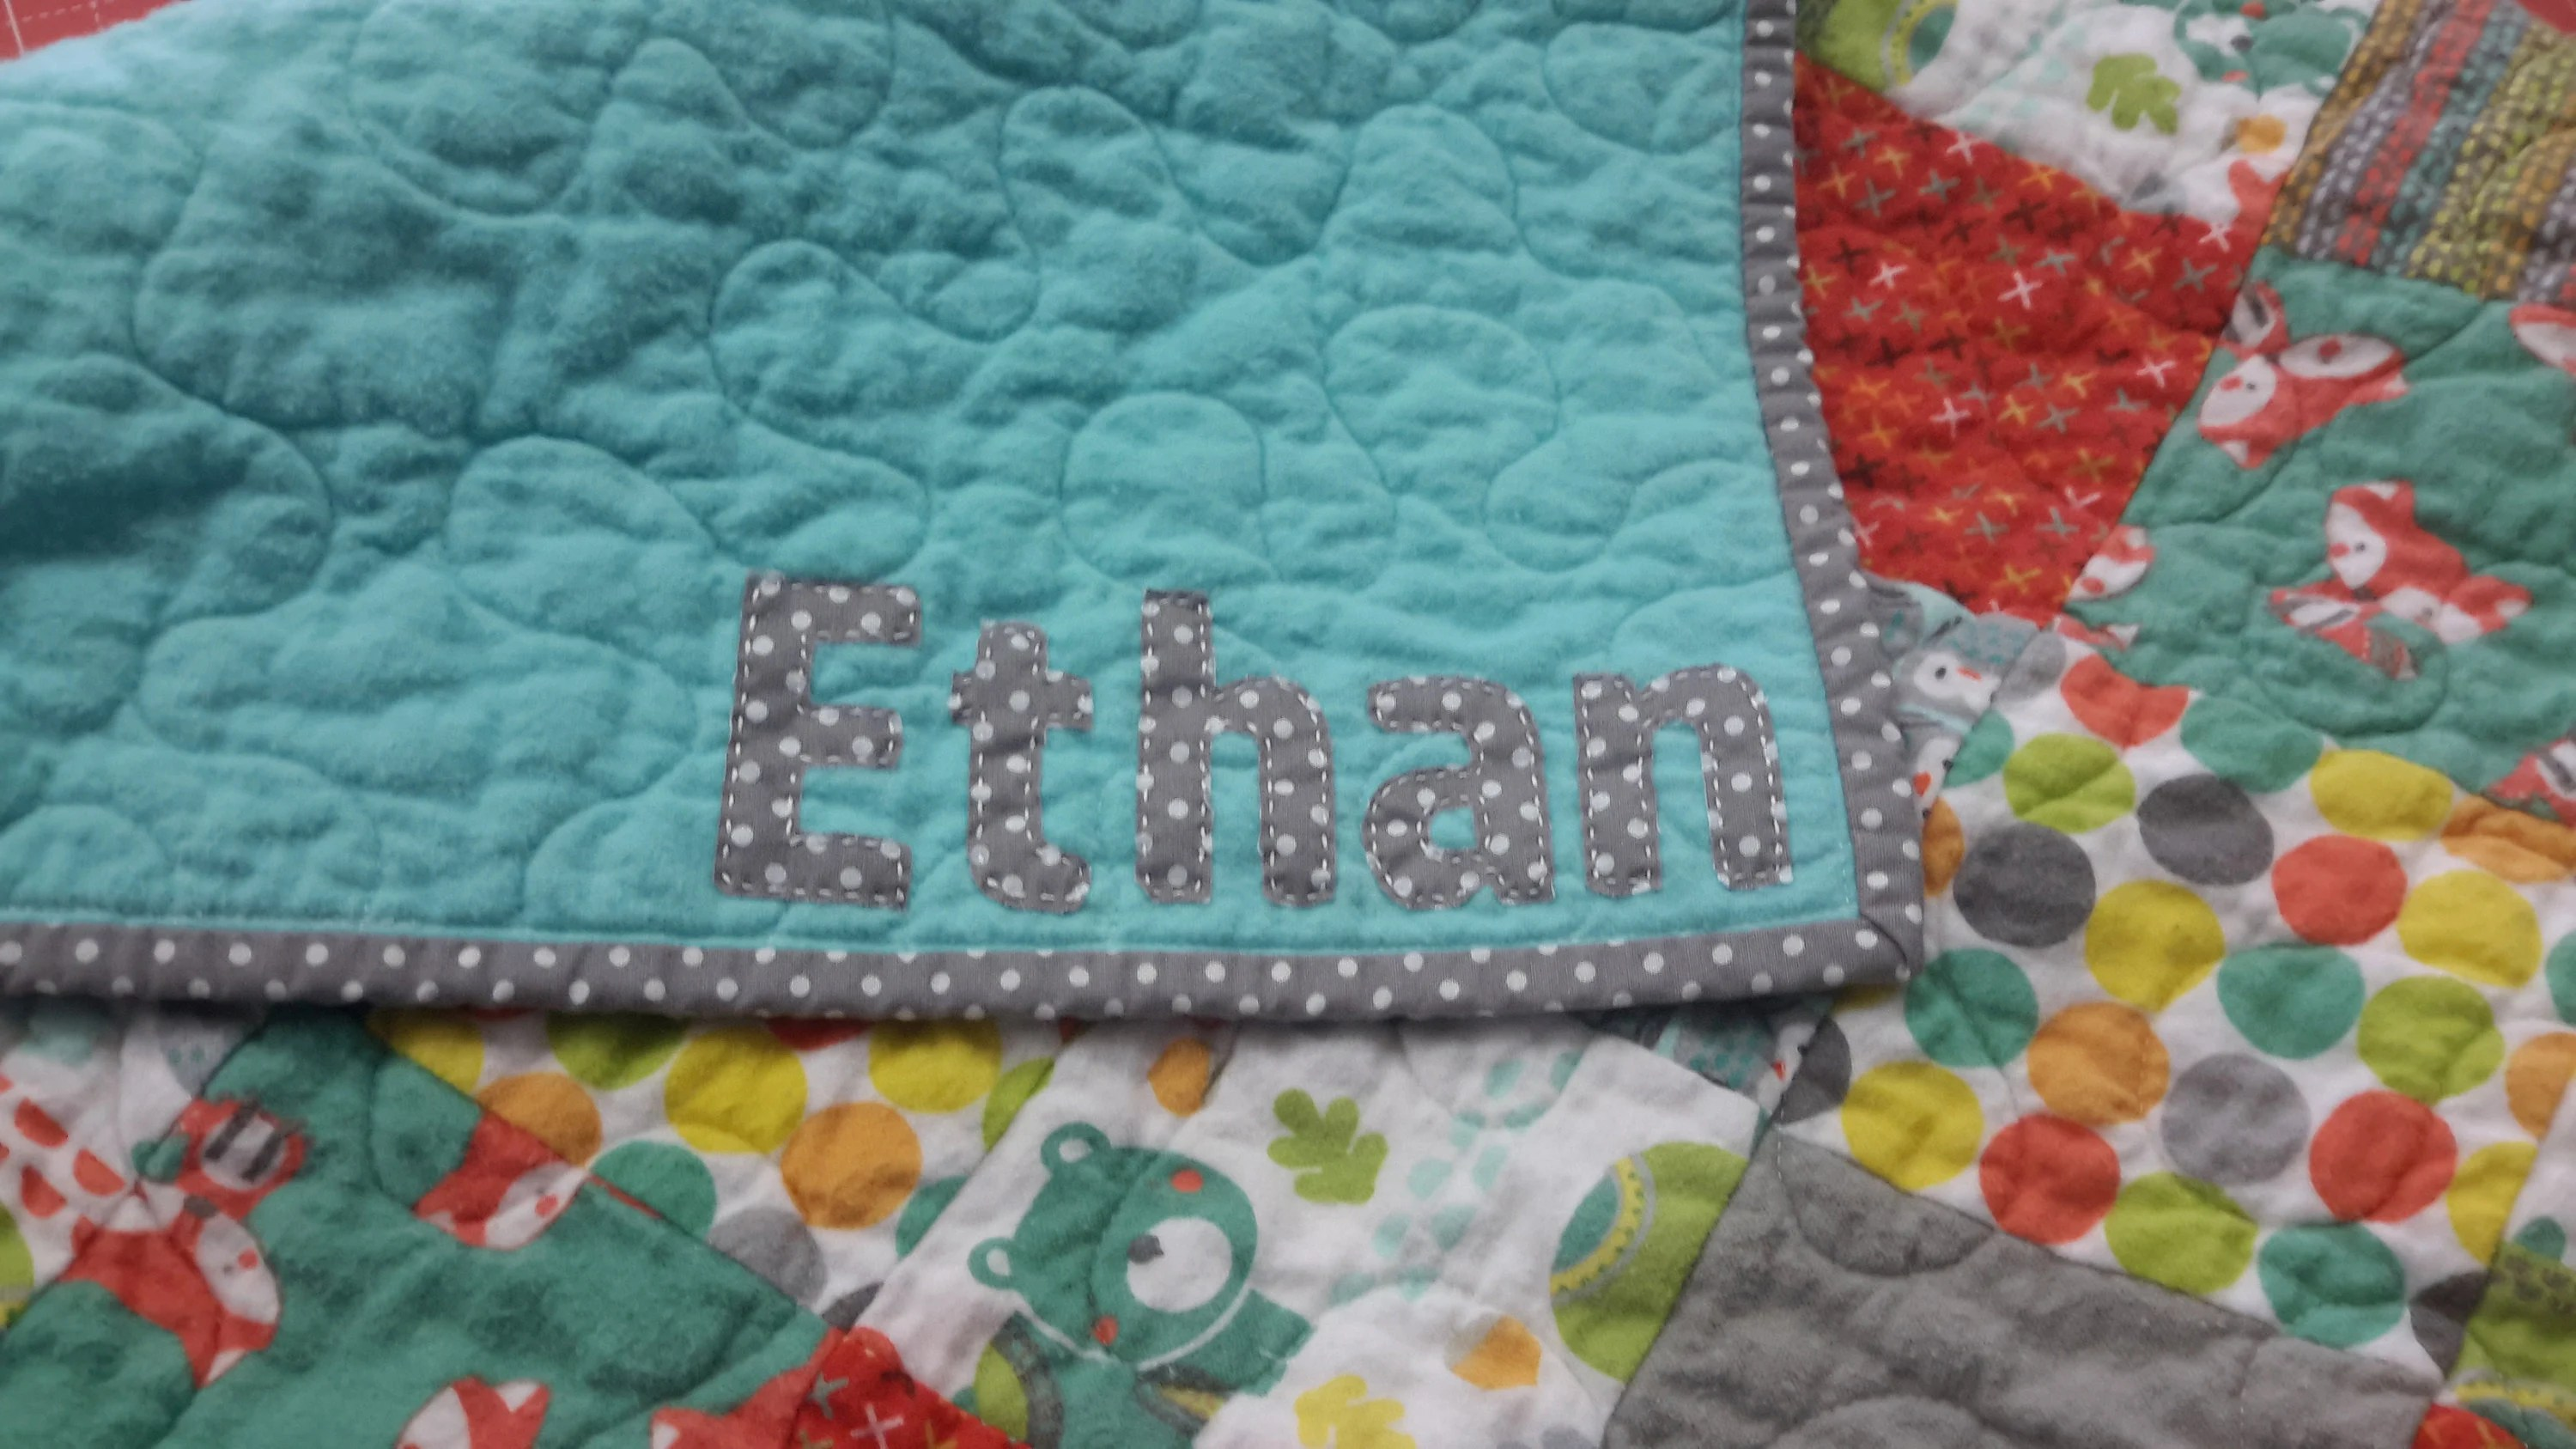 Quilt Personalization Add On  Add a Custom Name to the image 4